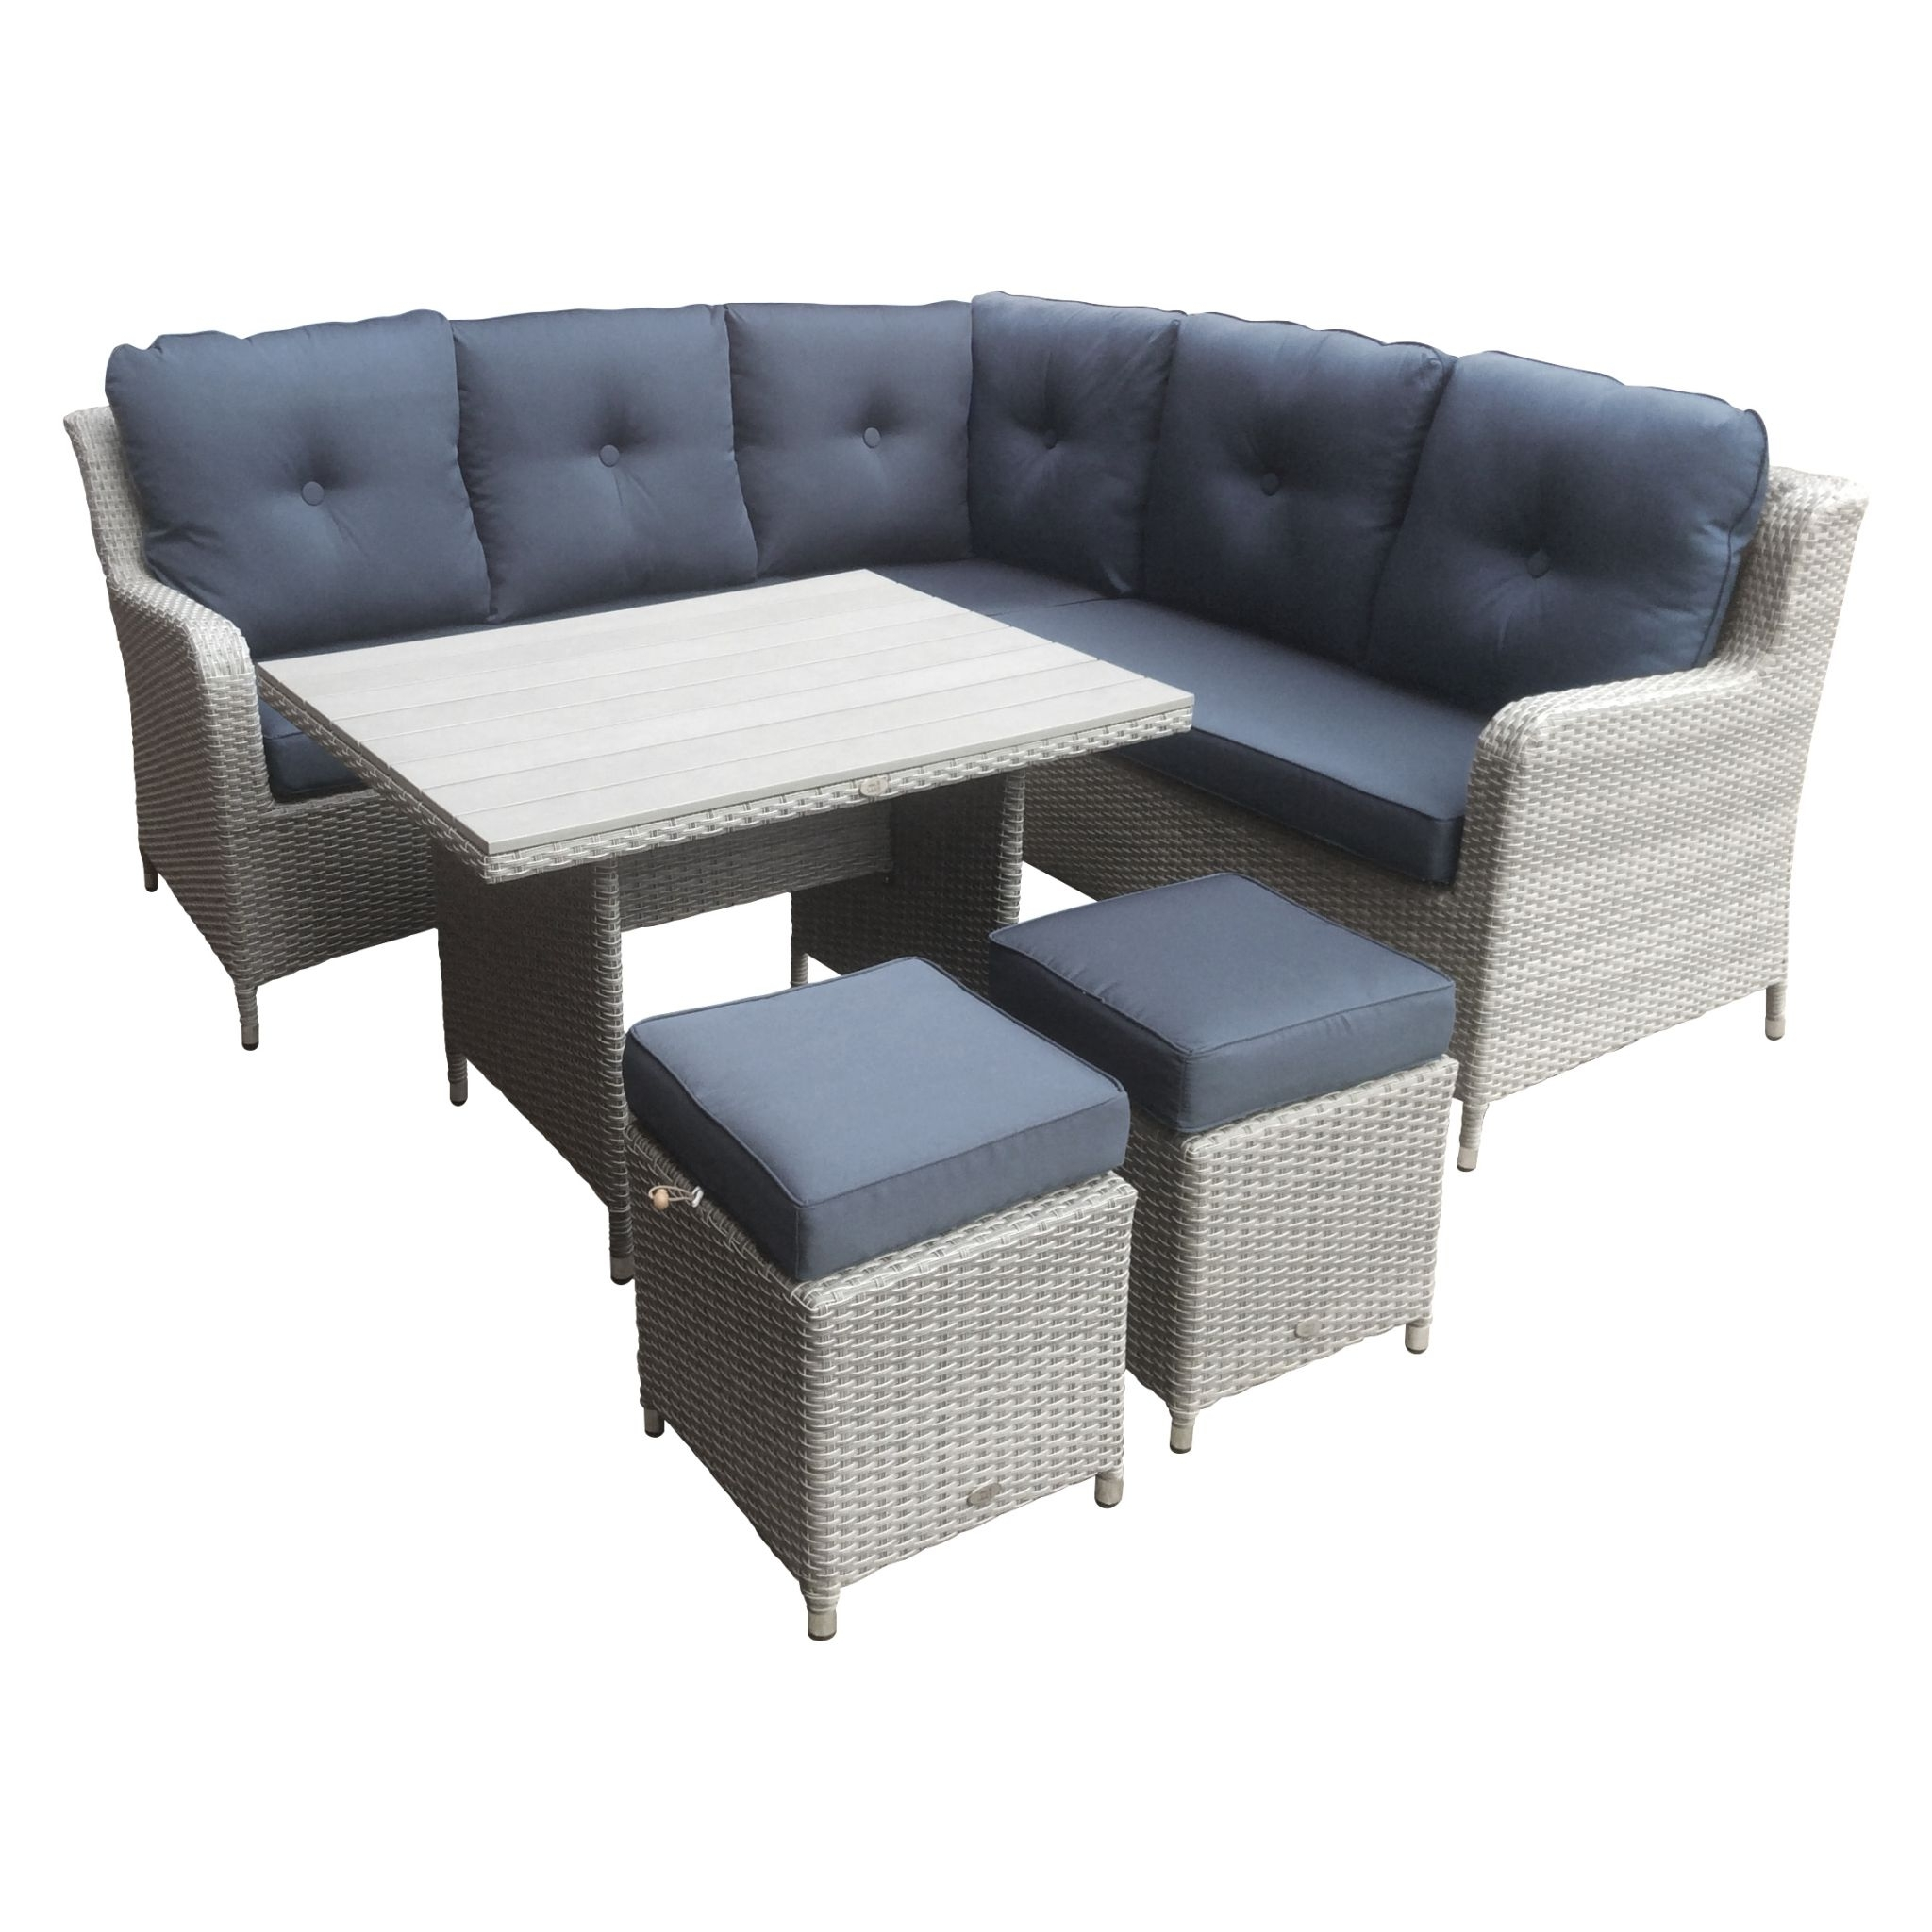 Popular Chatsworth Compact High Dining Set With Polywood Table Stools – Grey Pertaining To Compact Dining Sets (View 25 of 25)